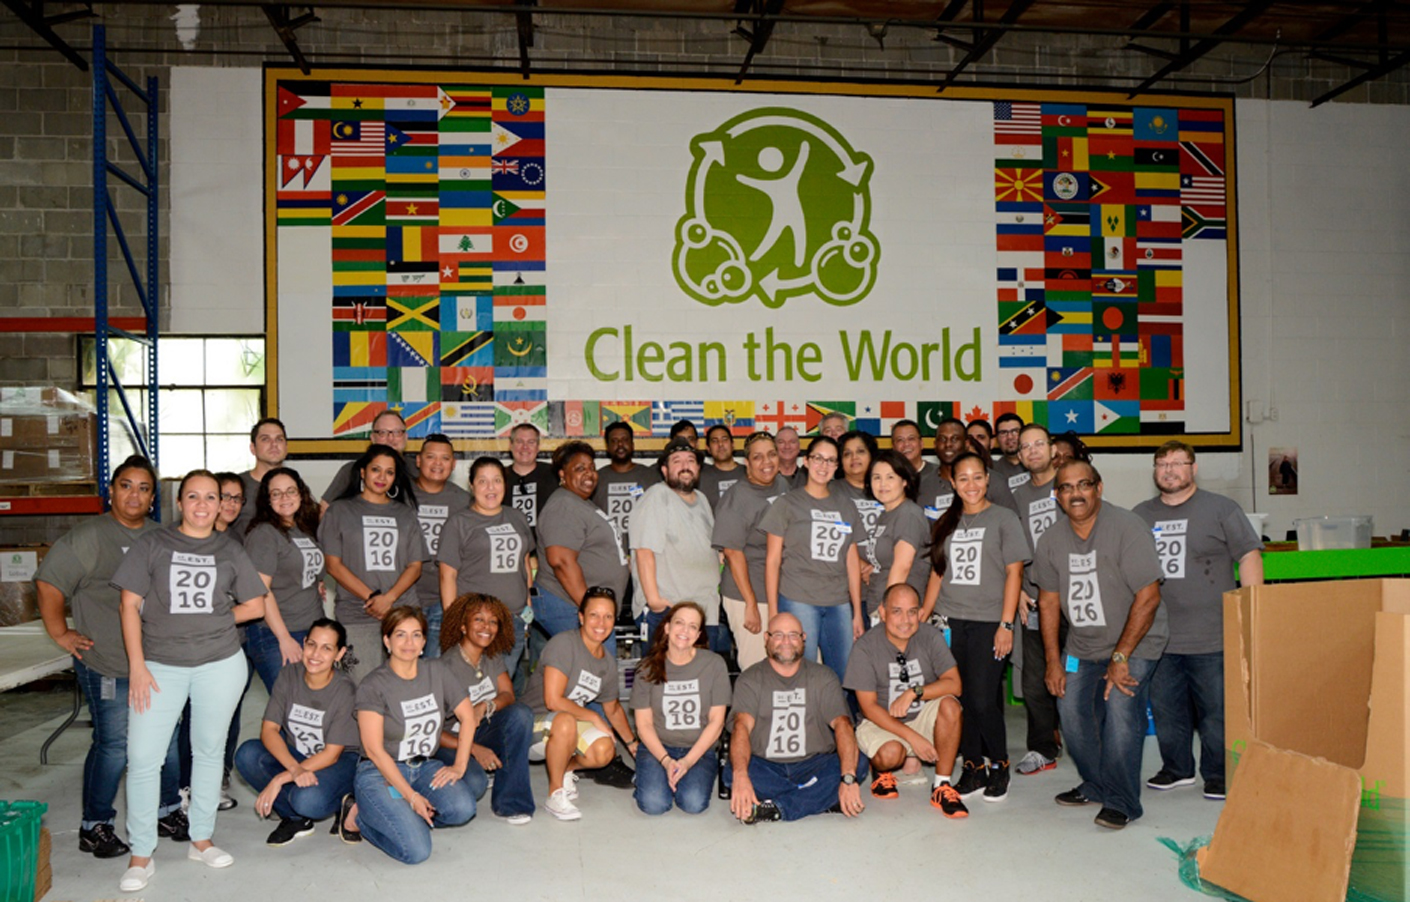 Clean the World Group Photo